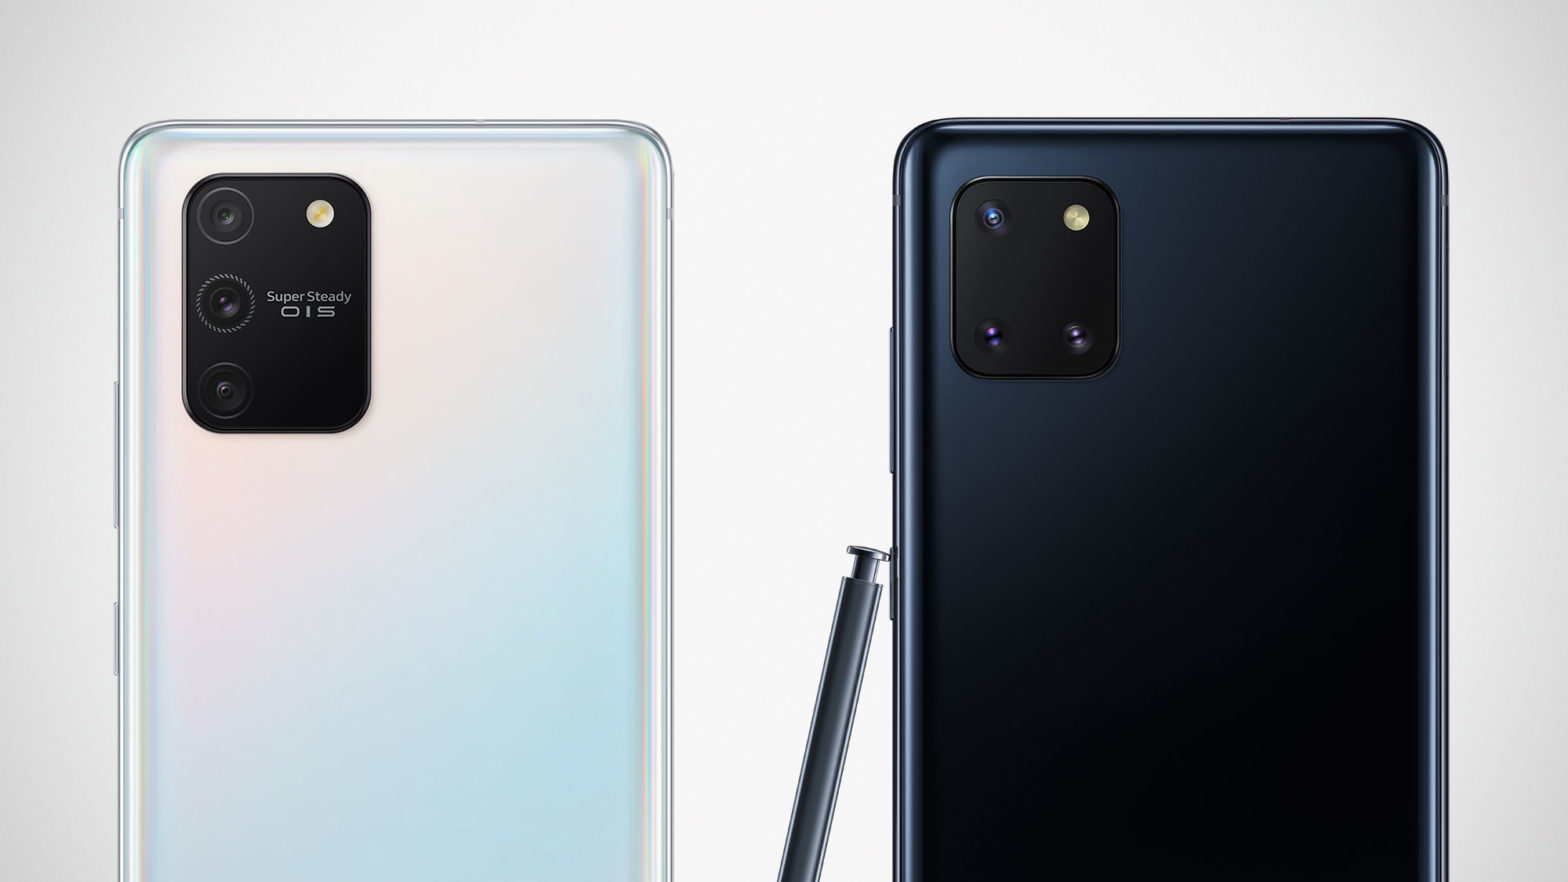 Samsung Galaxy S10 Lite and Galaxy Note10 Lite